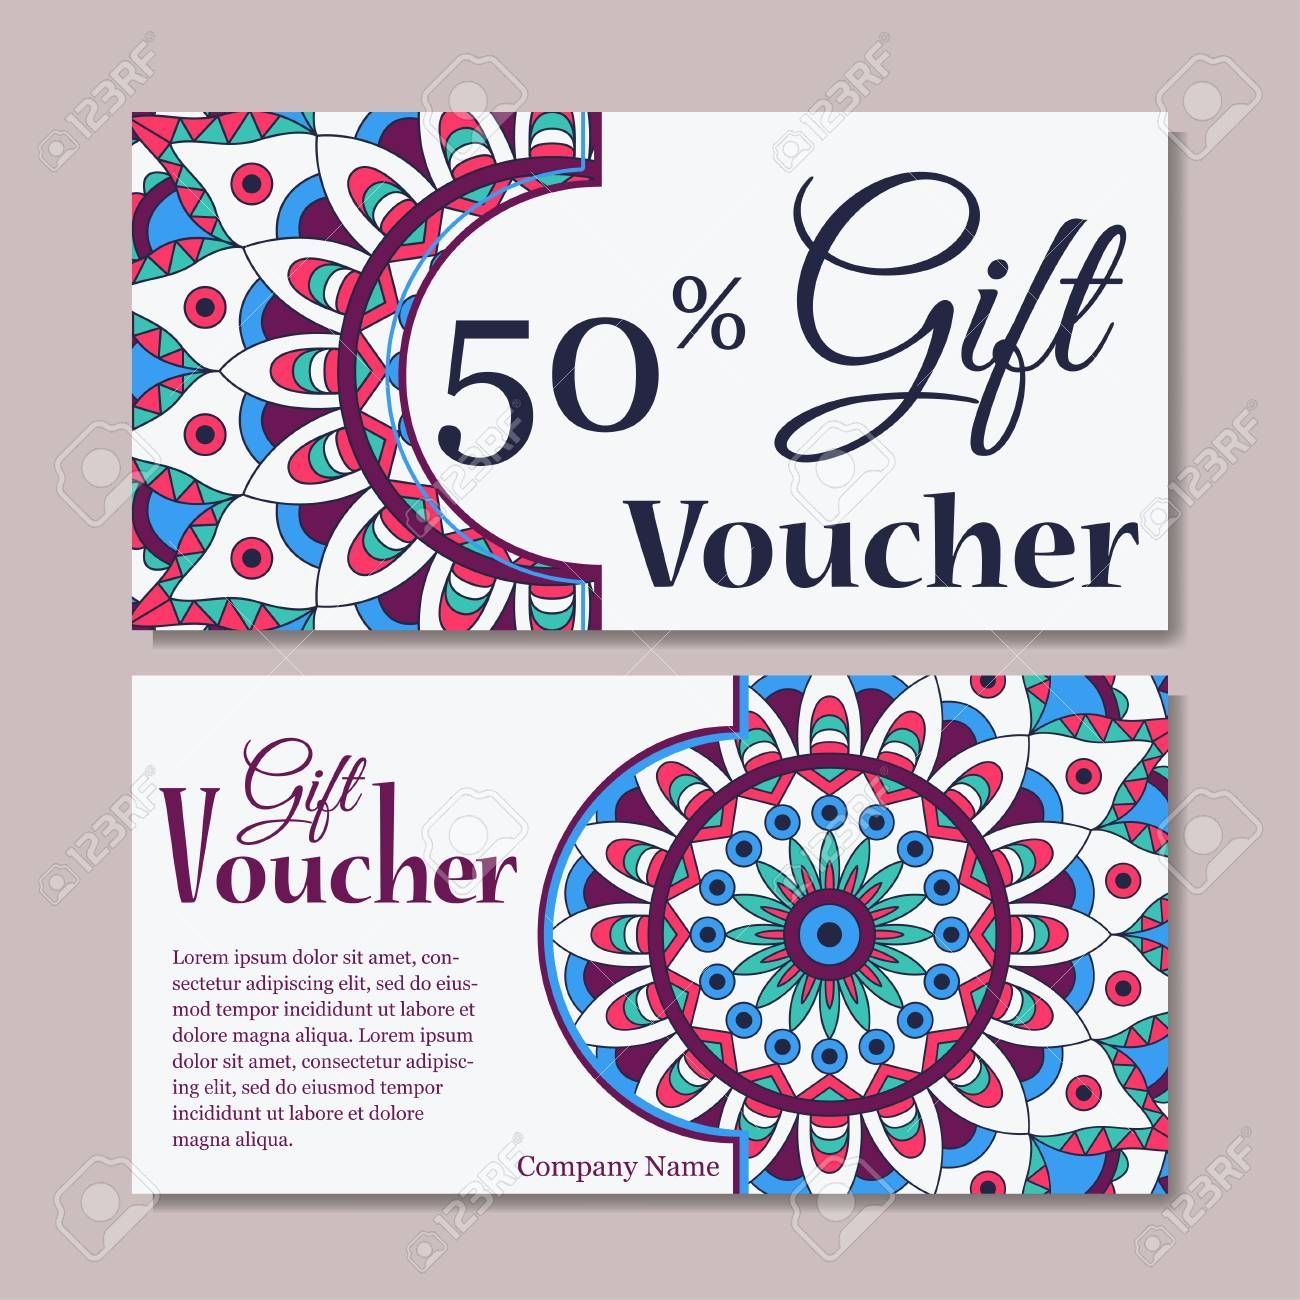 Gift Voucher Template With Mandala. Design Certificate For